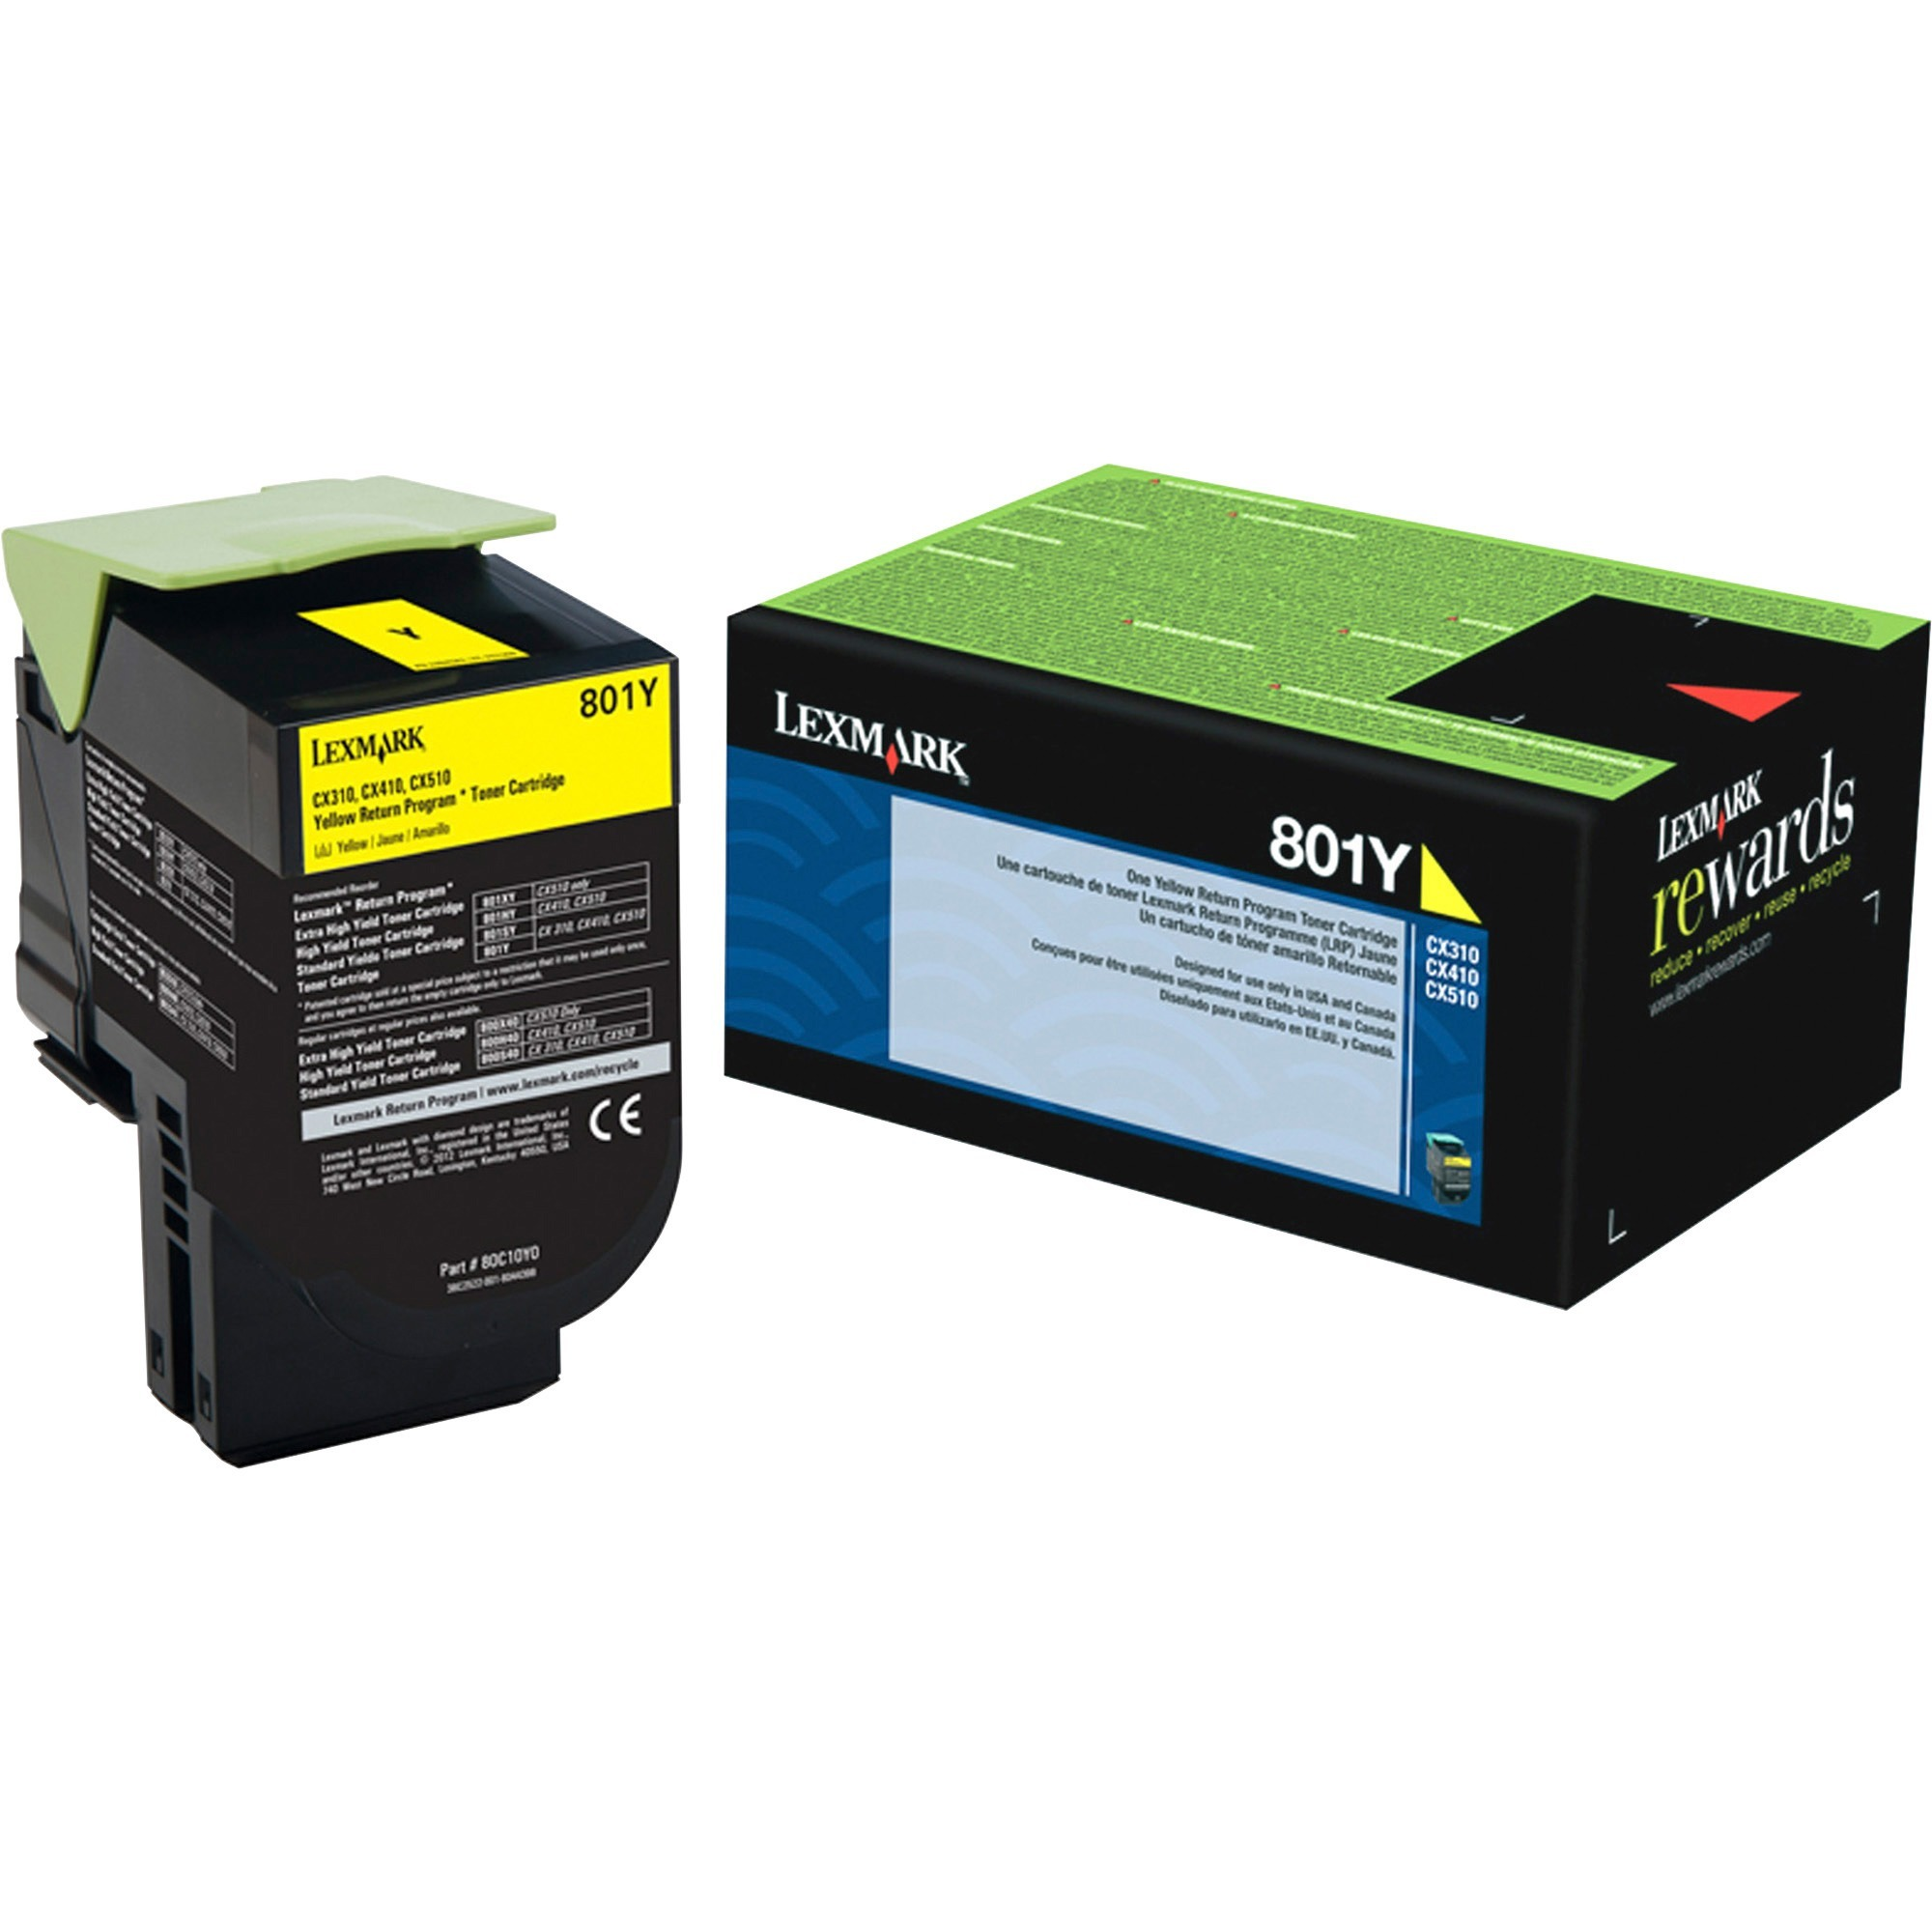 Lexmark Unison 801Y Toner Cartridge, 1 Each (Quantity)